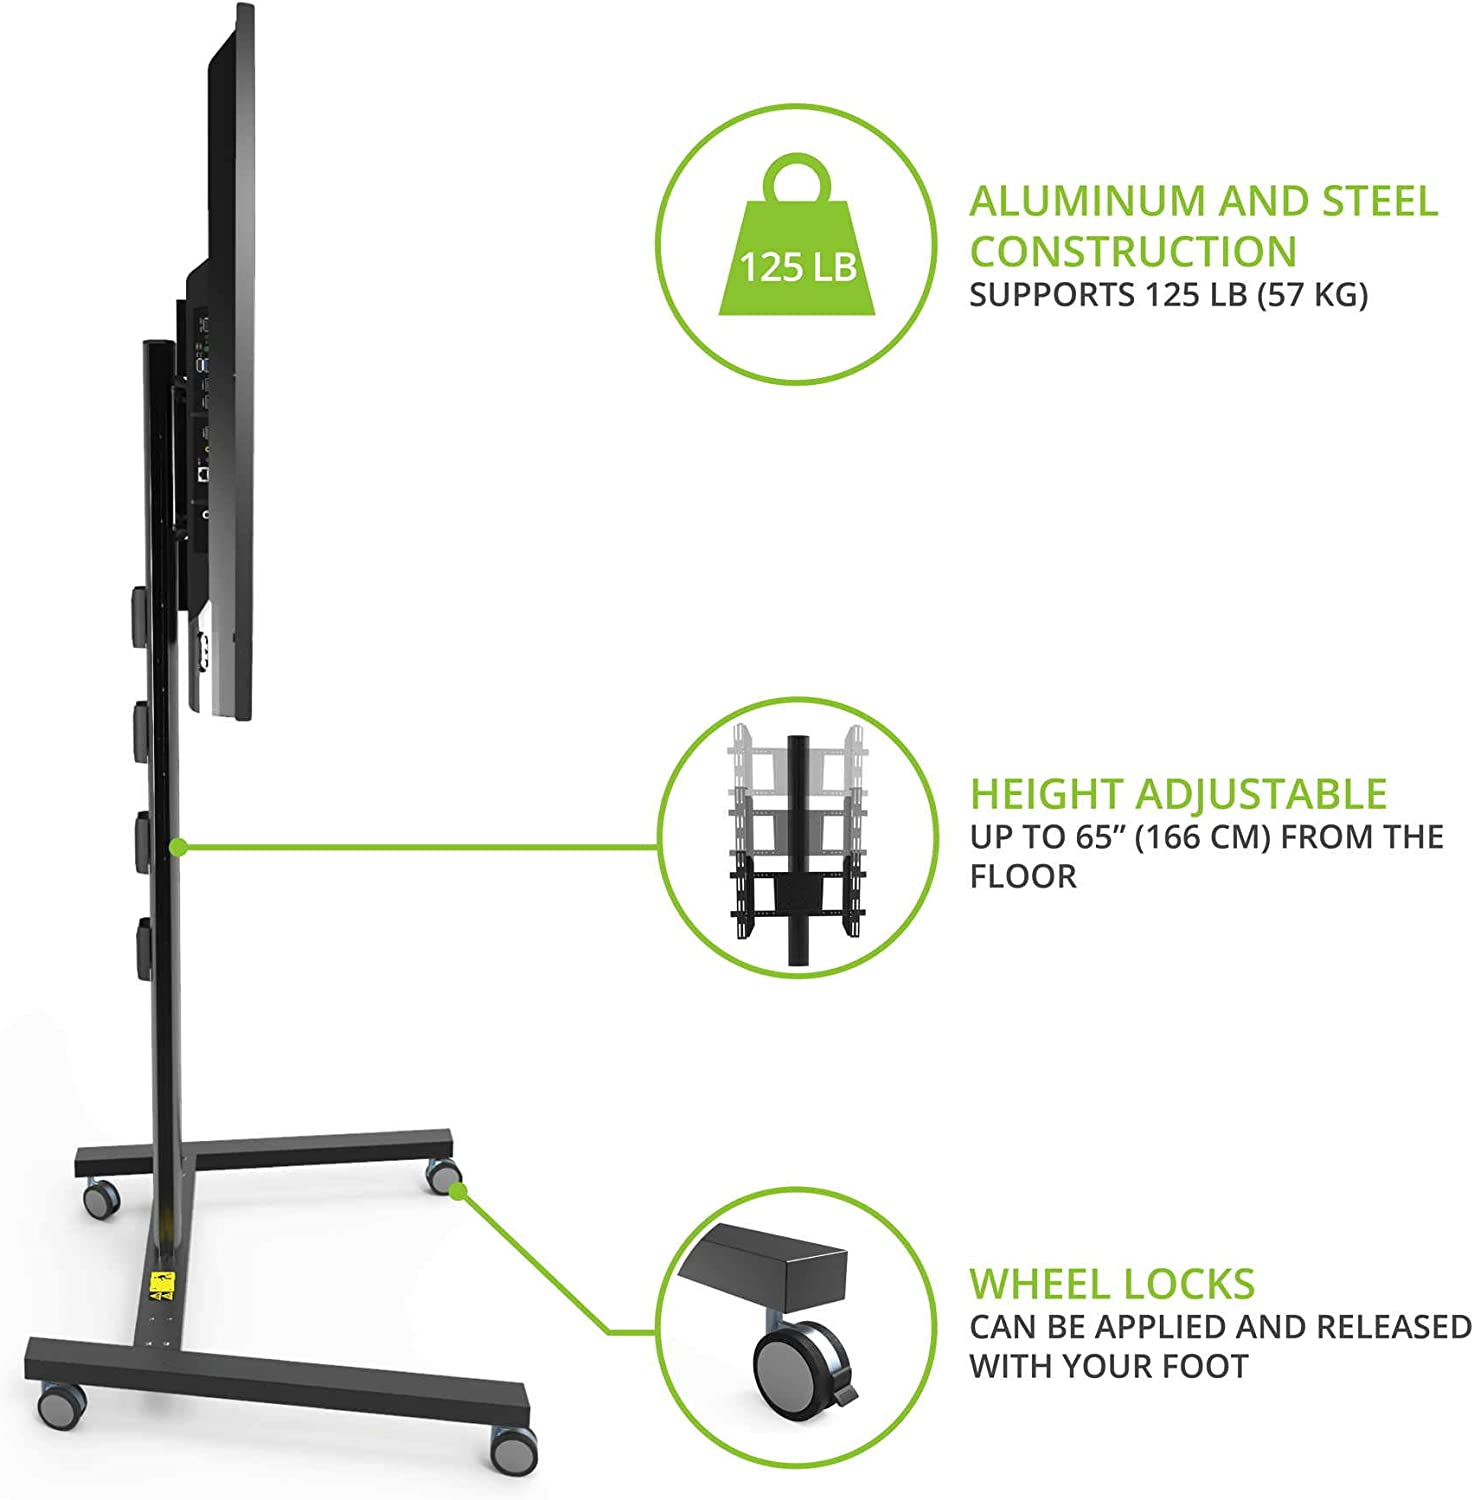 Kanto MKH65 Rolling TV Stand for 37-inch to 65-inch Displays, Black